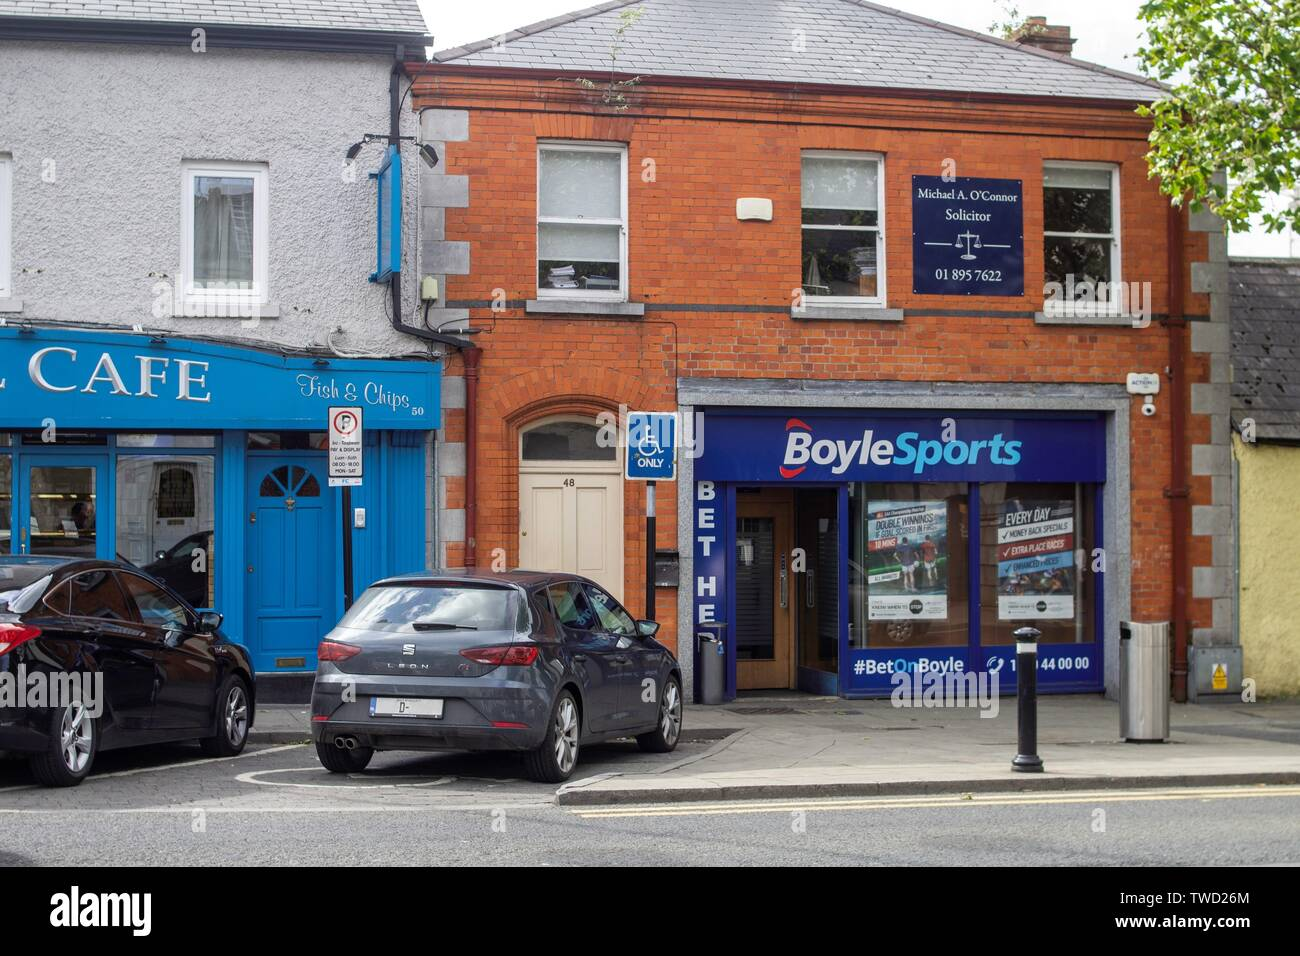 Dublin, Ireland, 17th June 2019. A branch of BoyleSports bookmakers in Swords, Co. Dublin. Stock Photo